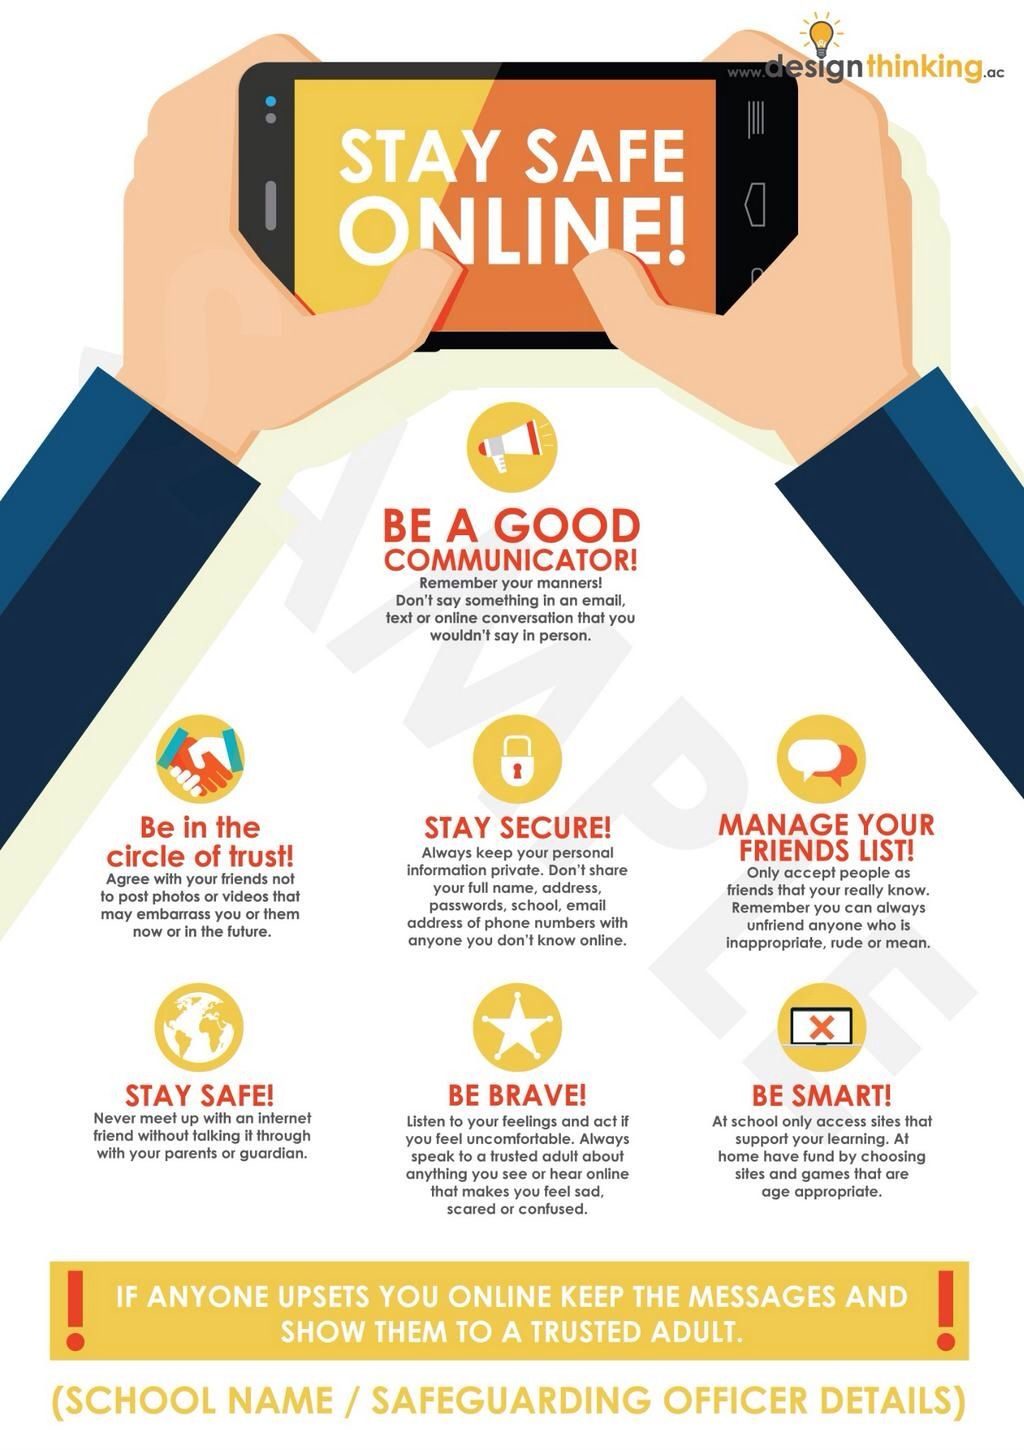 E safety poster designs - Help Students To Stay Safe And Legal Online With Our E Safety Posters